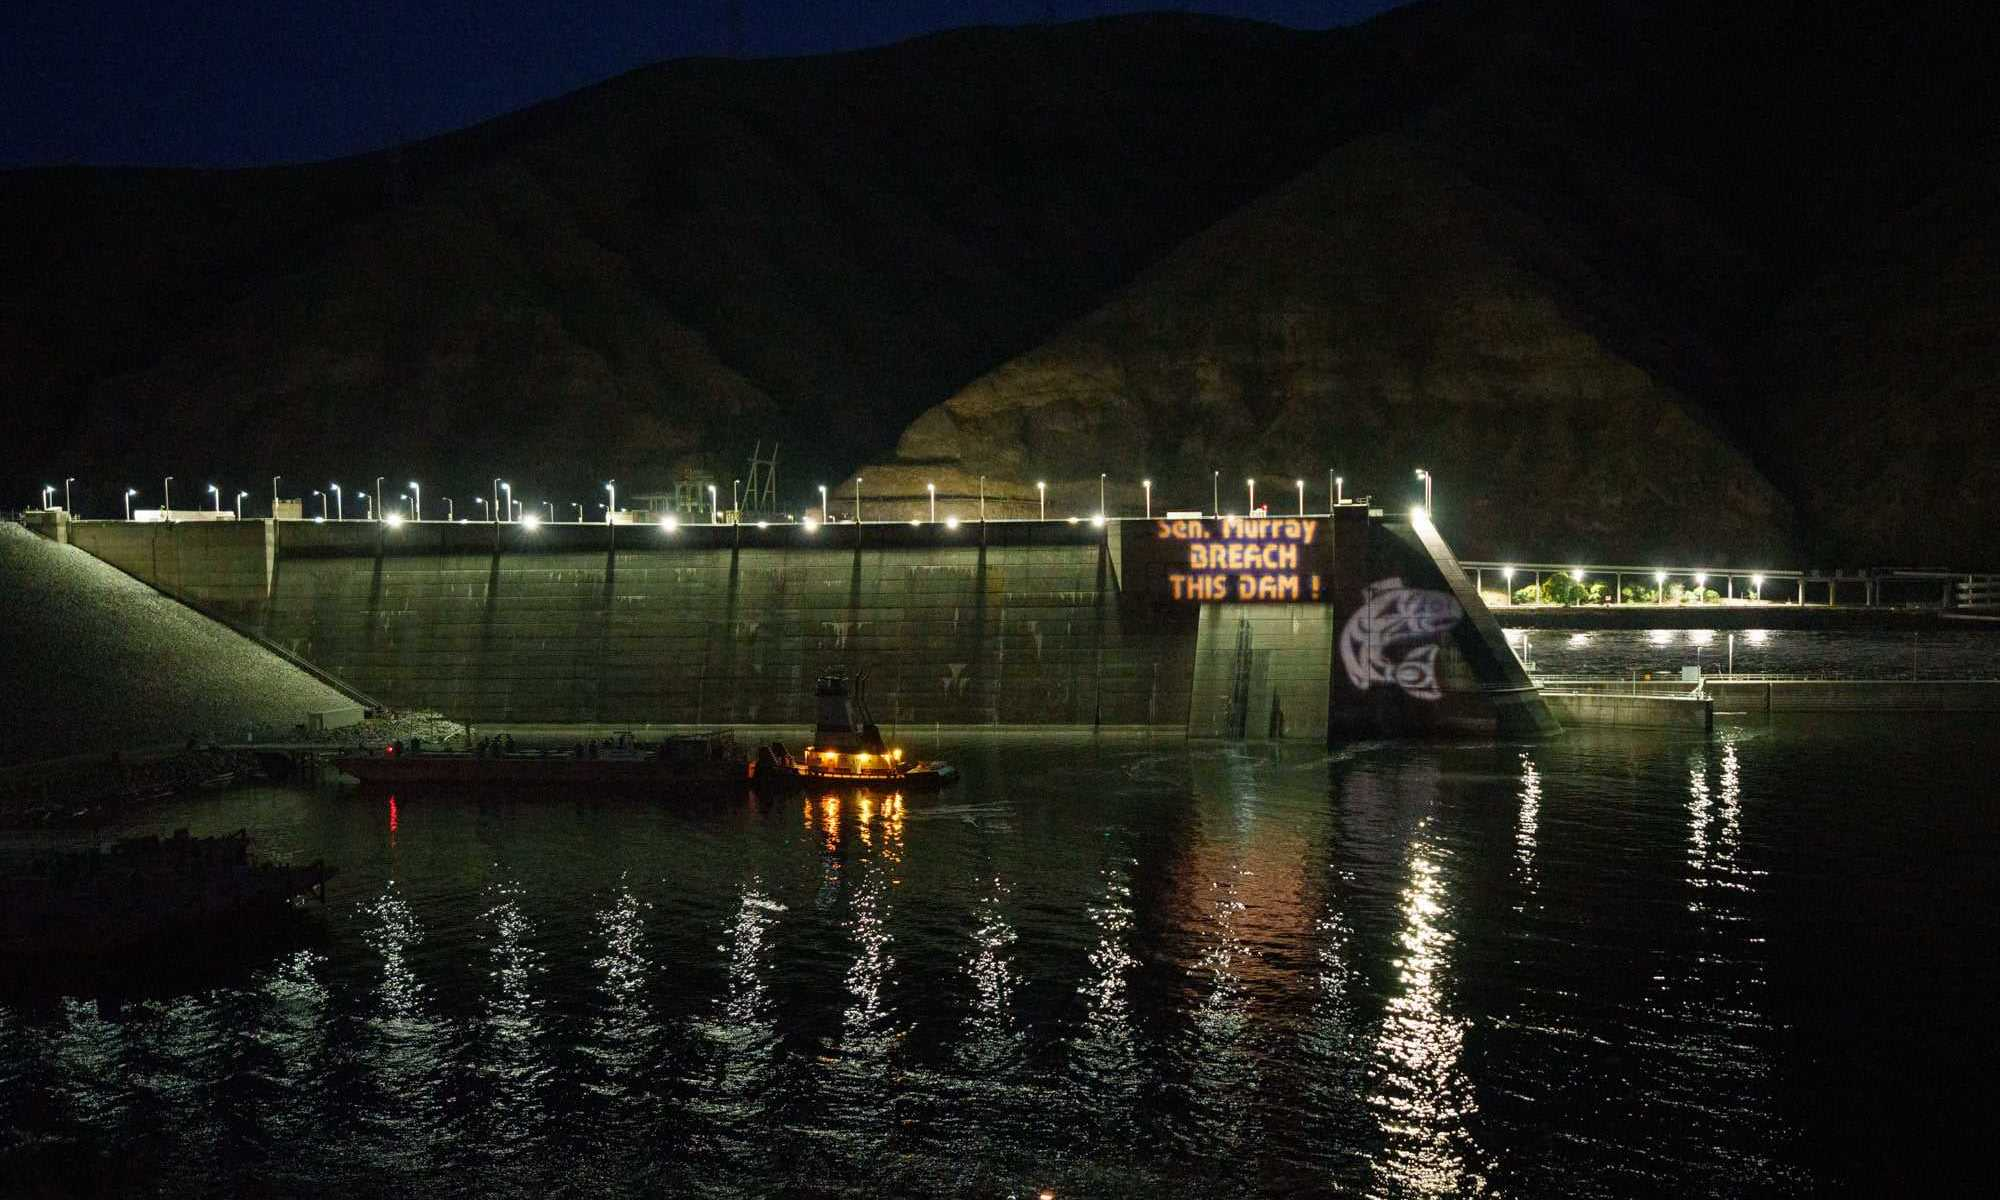 Snake River dam showing protest projection at night. Sen. Murray, Breach this Dam!